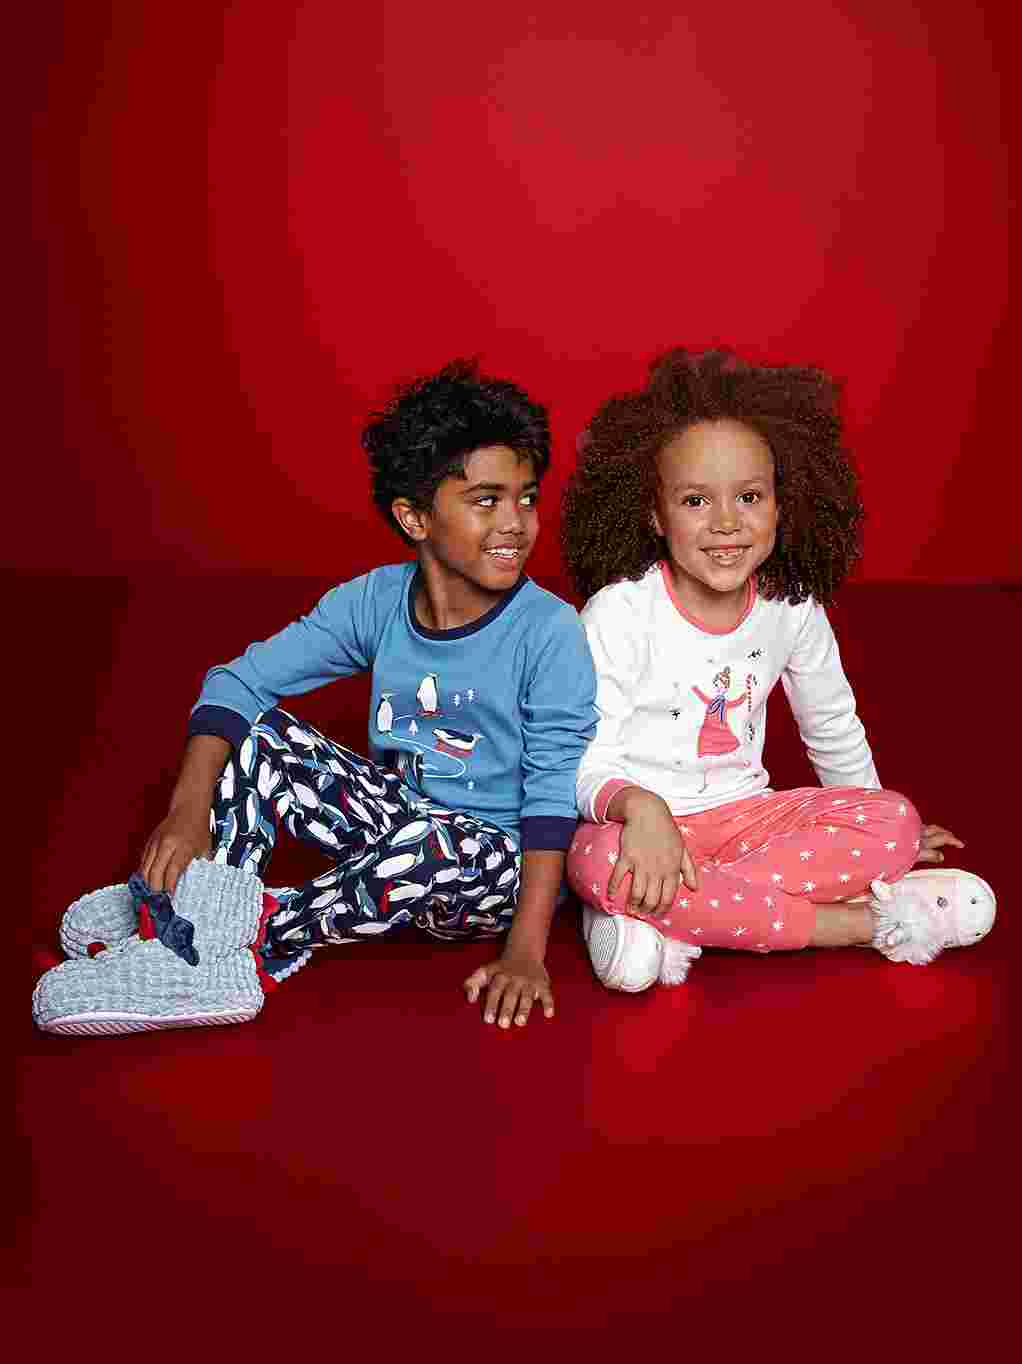 Boy and girl in fun nightwear and slippers